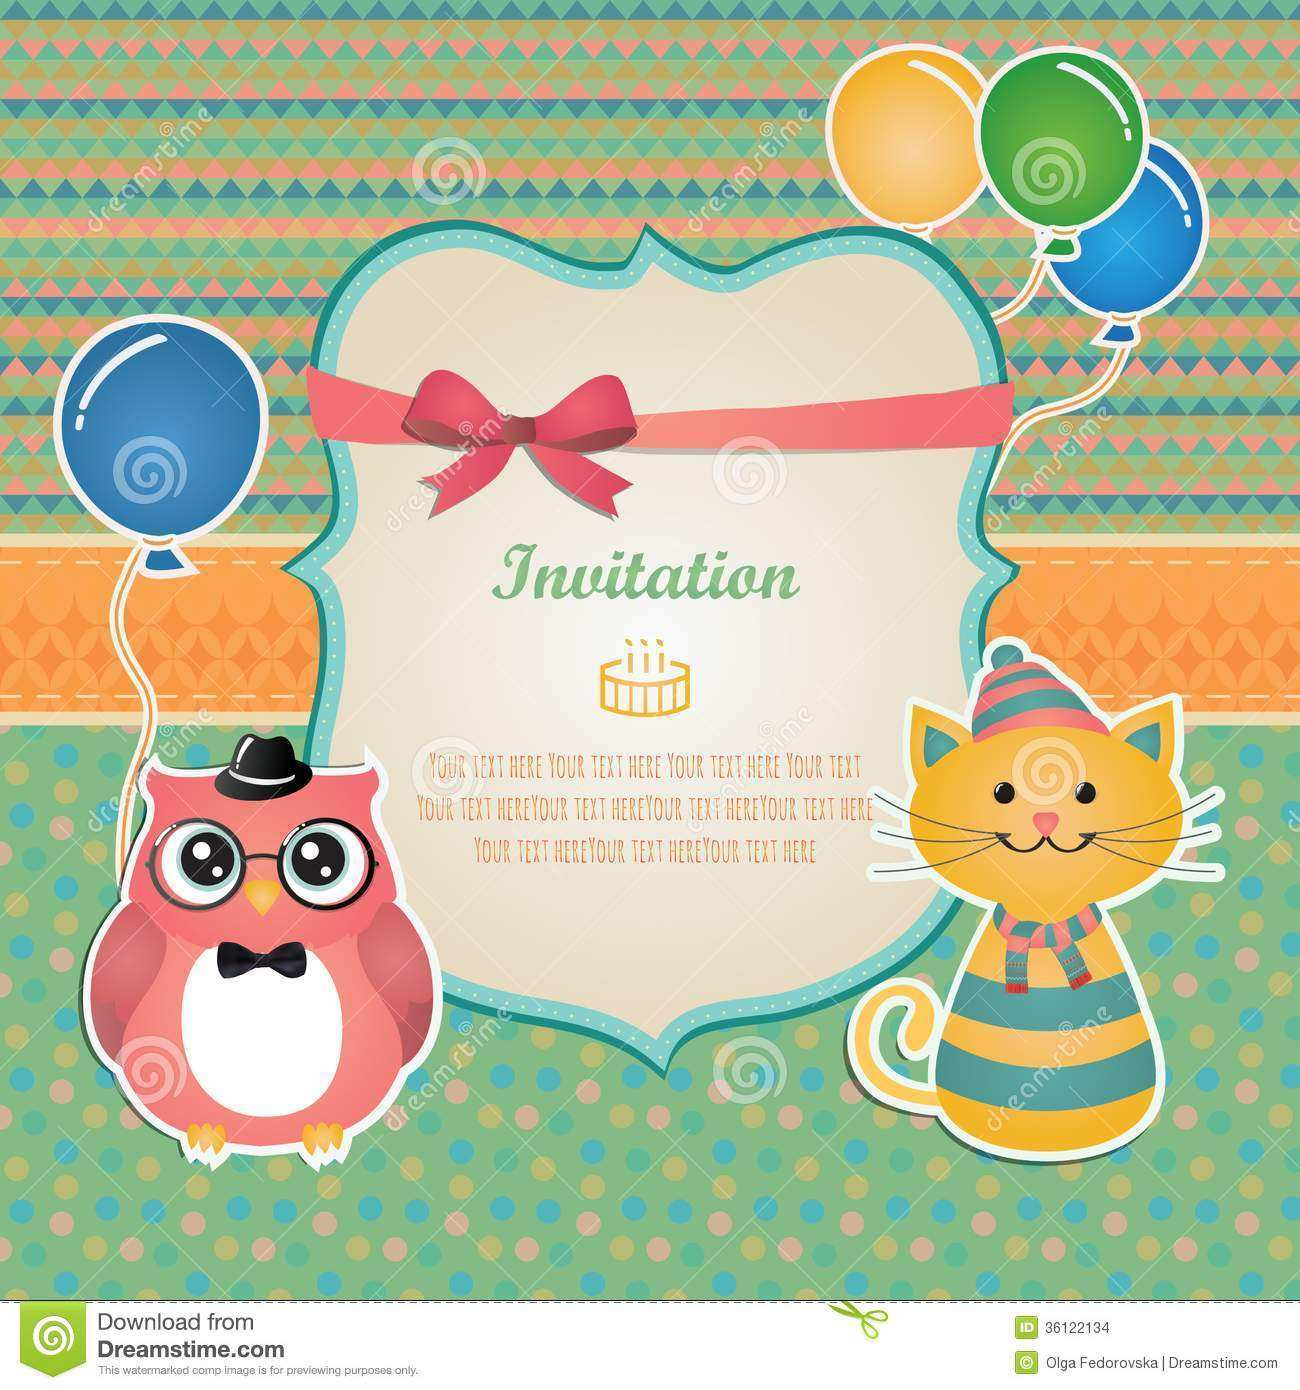 50 Printable Party Invitation Cards Design in Photoshop with Party Invitation Cards Design